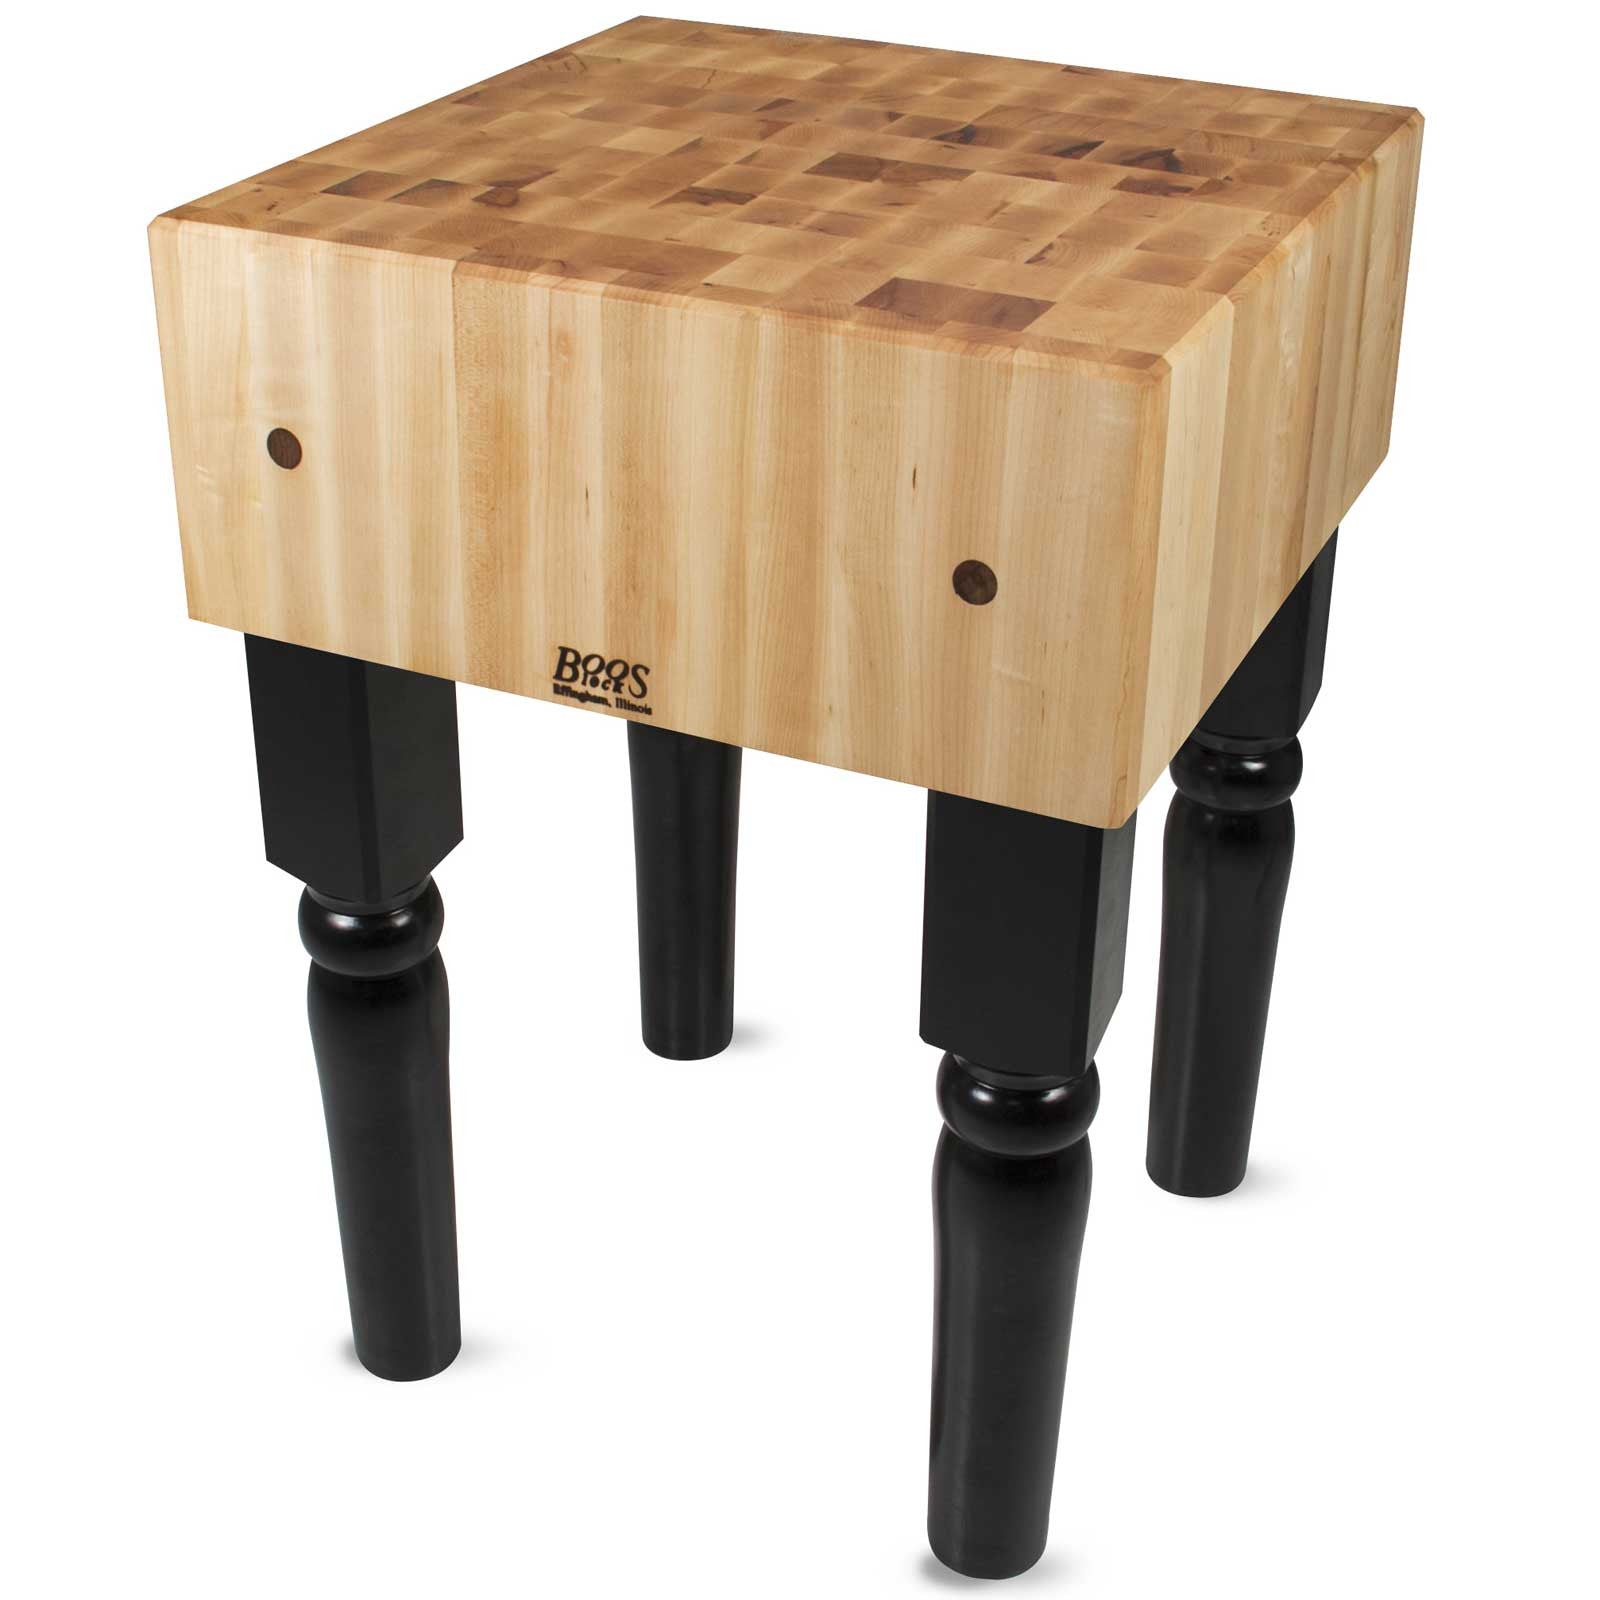 "John Boos 30"" x 30"" x 10"" Maple Top AB Butcher Block"